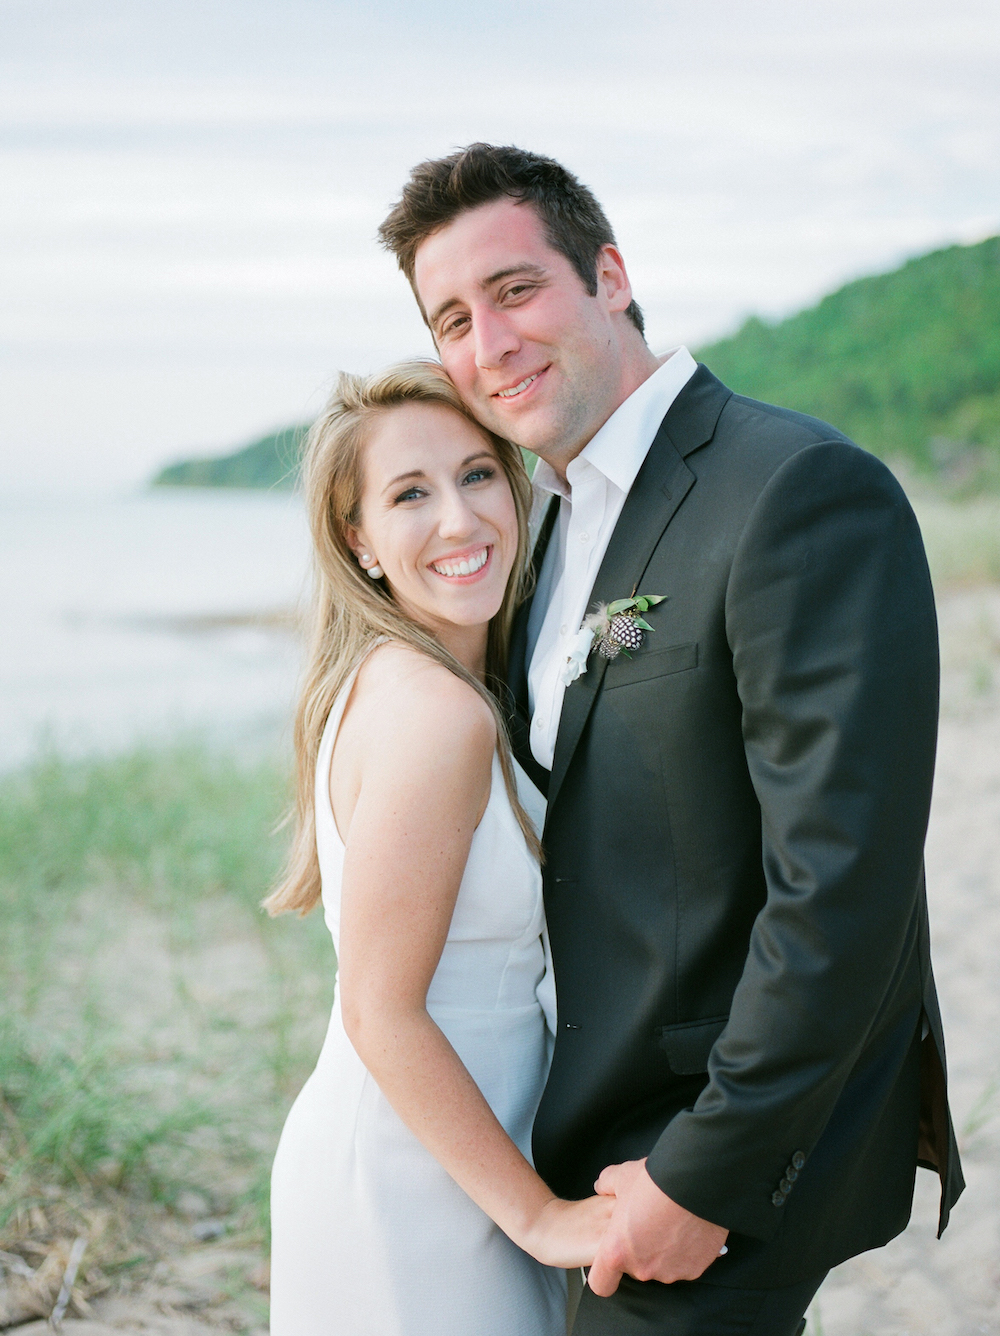 A couple smiling on the beach in Glen Arbor, Michigan